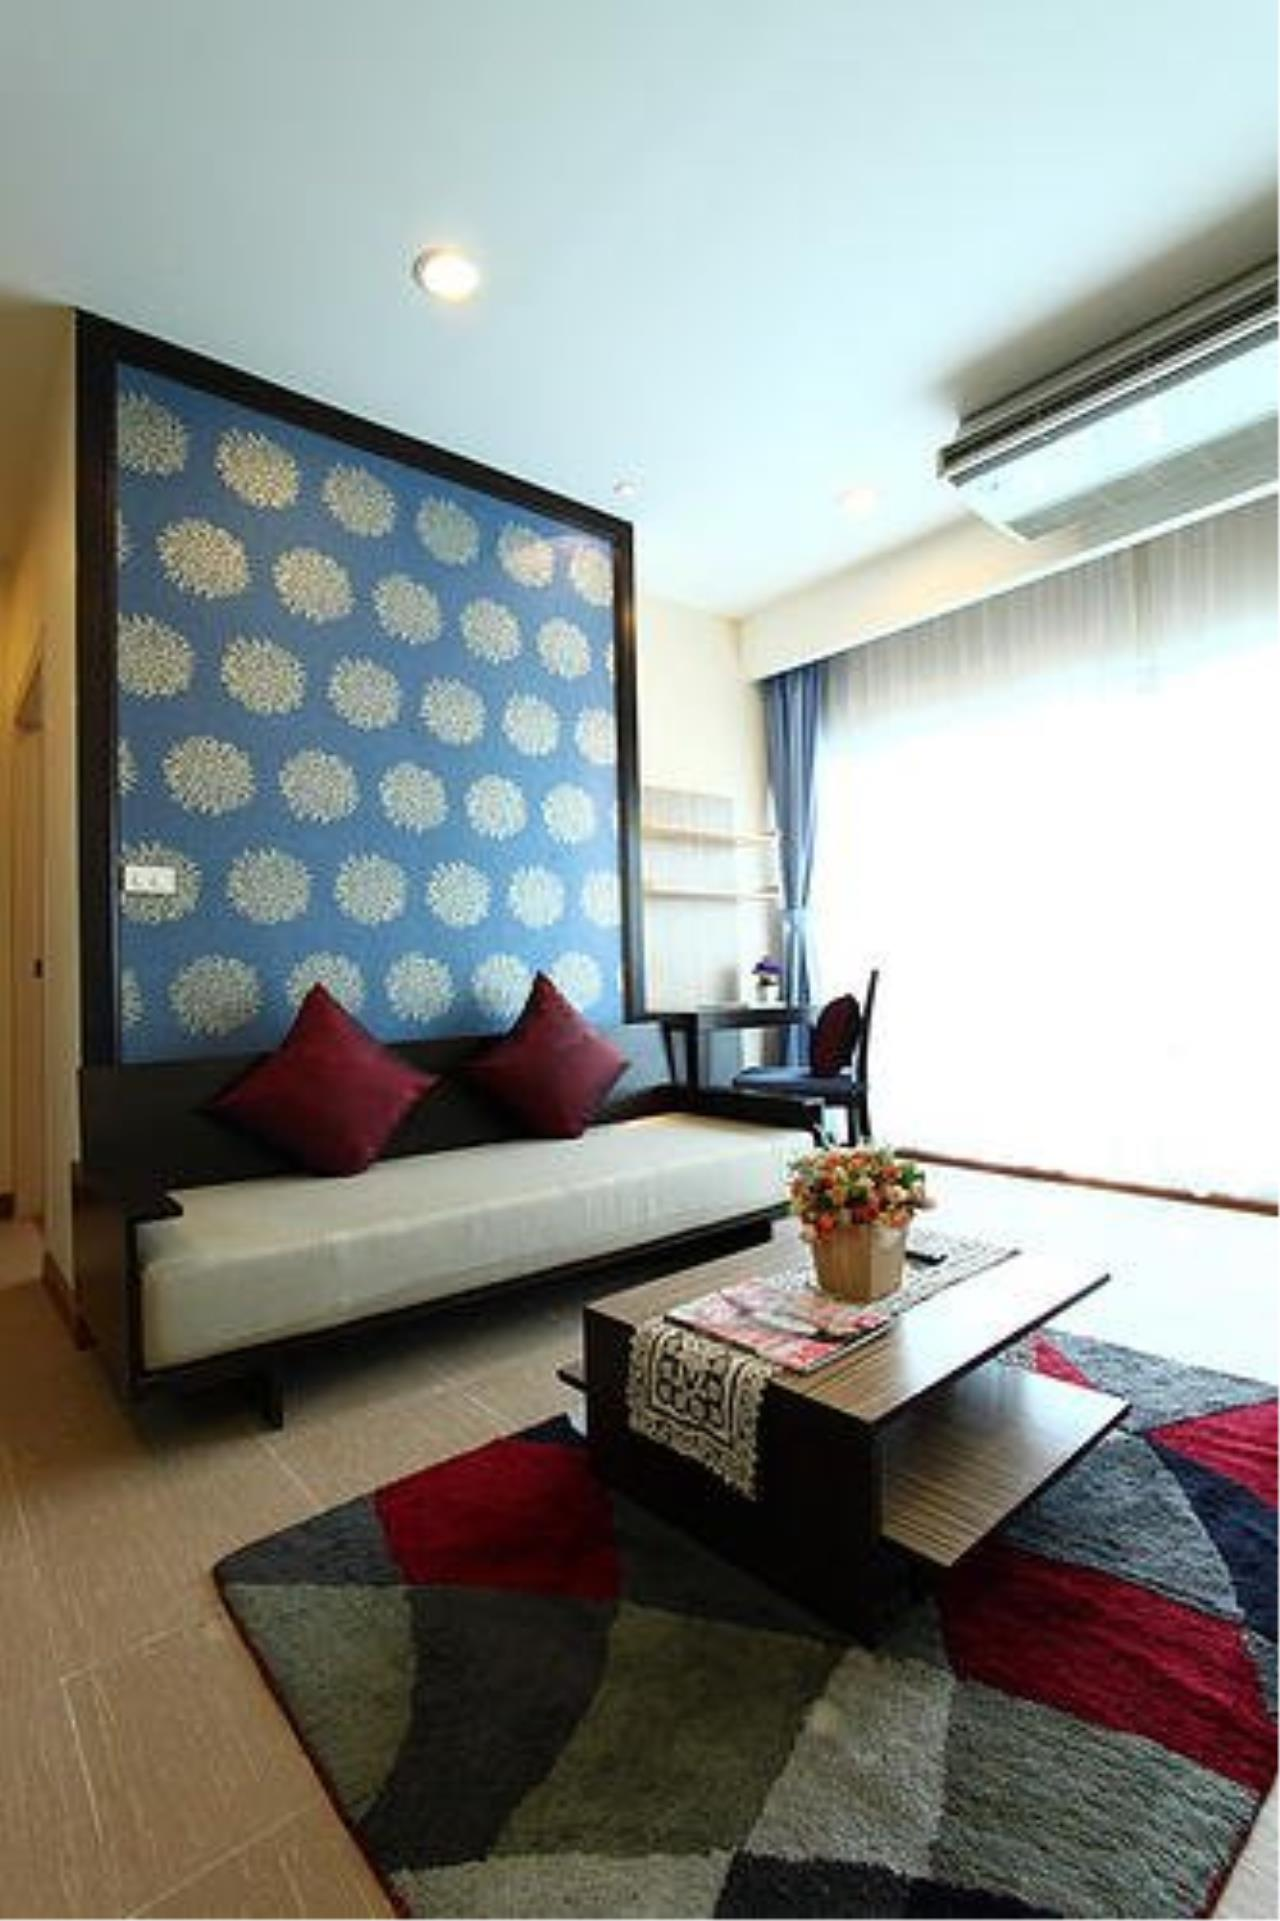 Piri Property Agency's Bright 2 Bedrooms in the Sarin Suites Building for rent 3